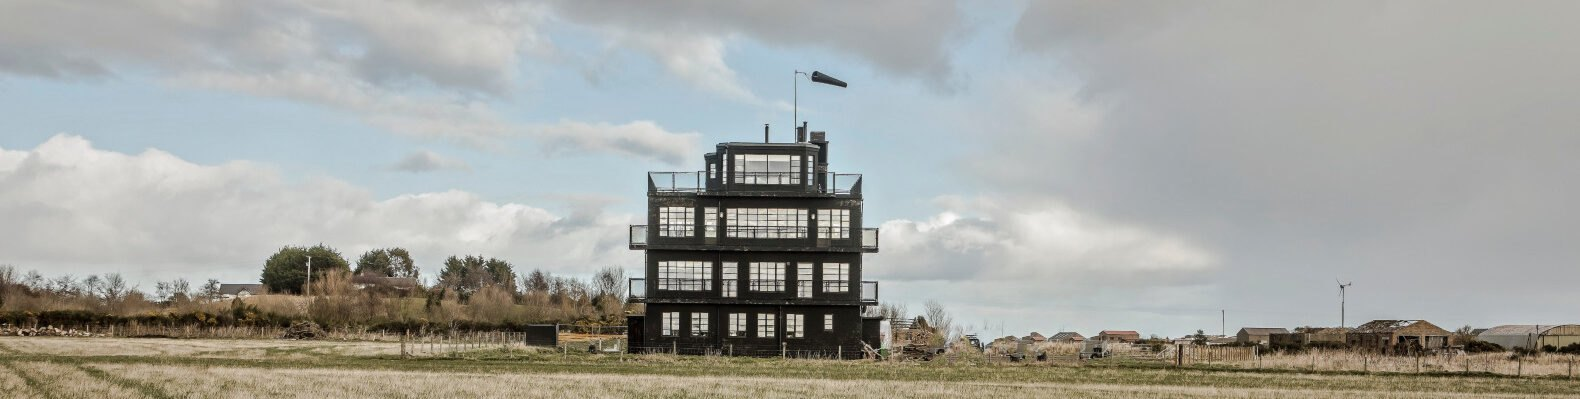 black air traffic control tower in a grassy field